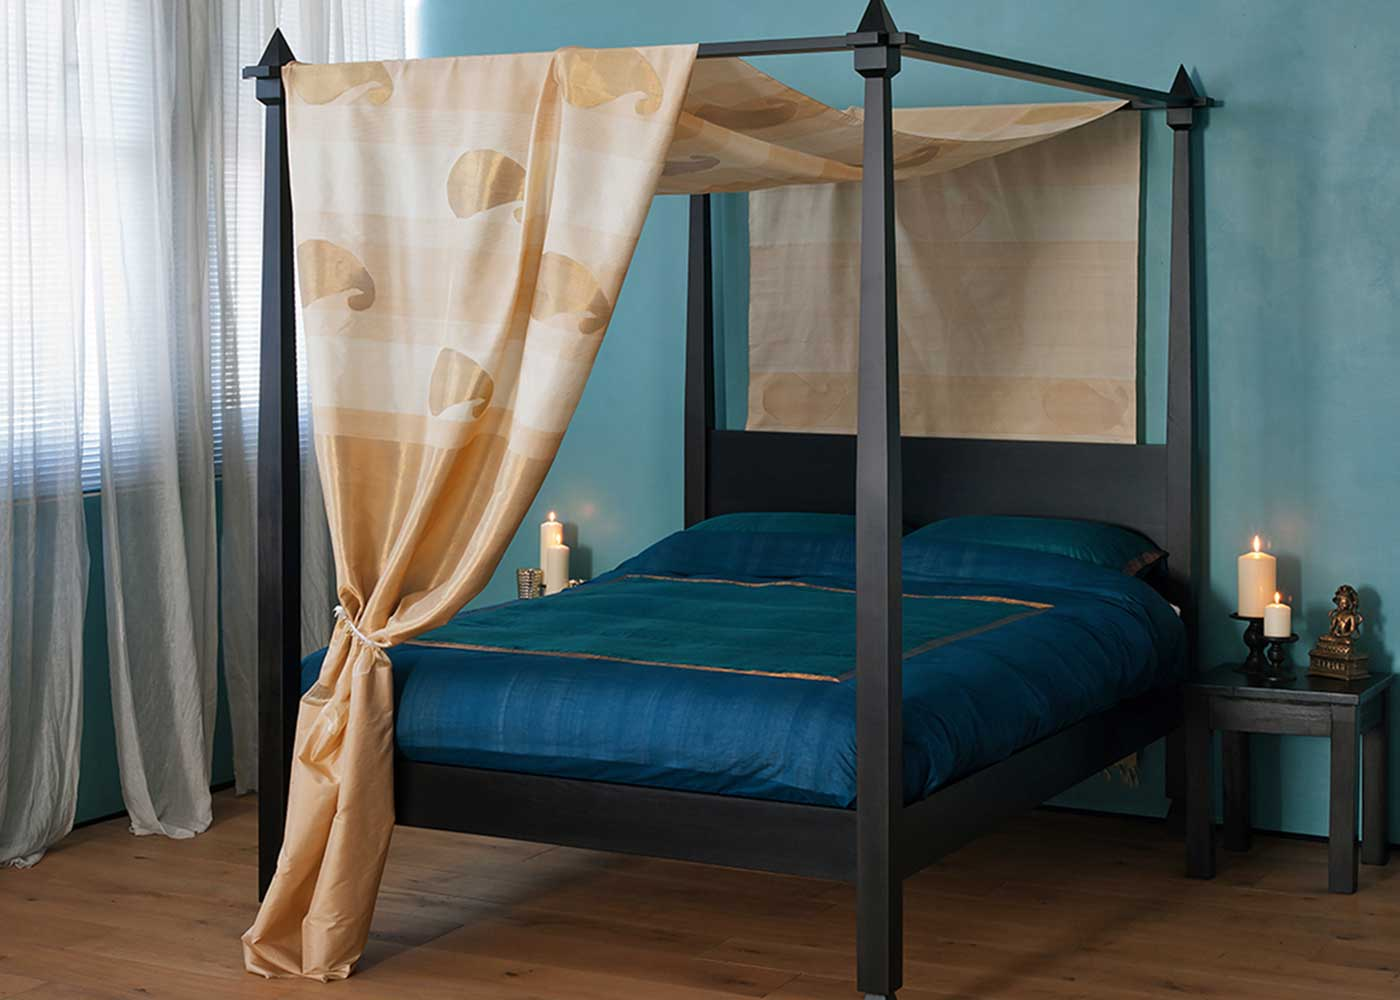 Indian Beds Amp Asian Bedrooms Inspiration Natural Bed